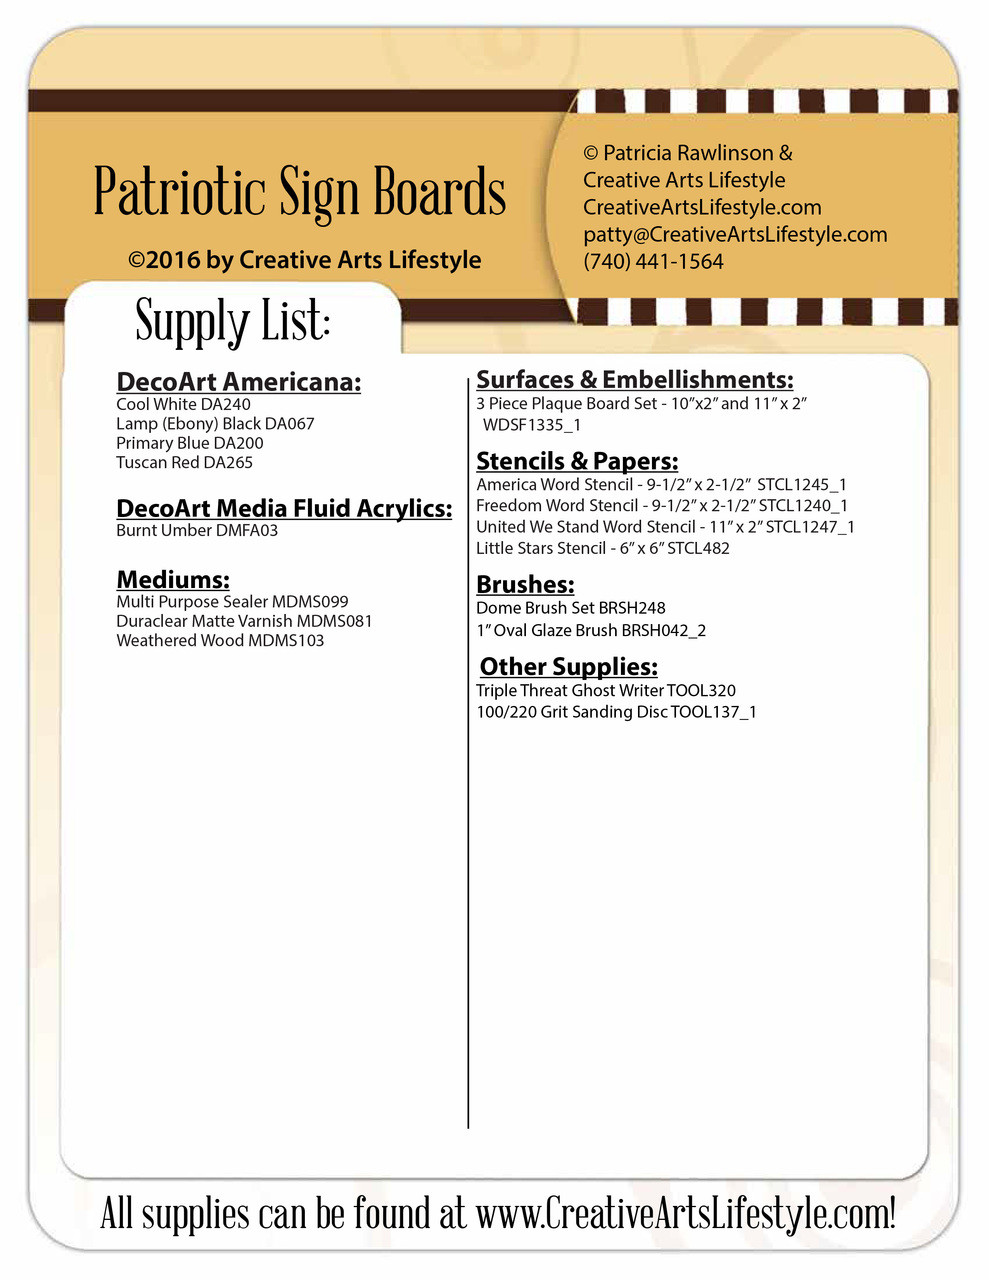 Patriotic Sign Boards Pattern Packet - Patricia Rawlinson